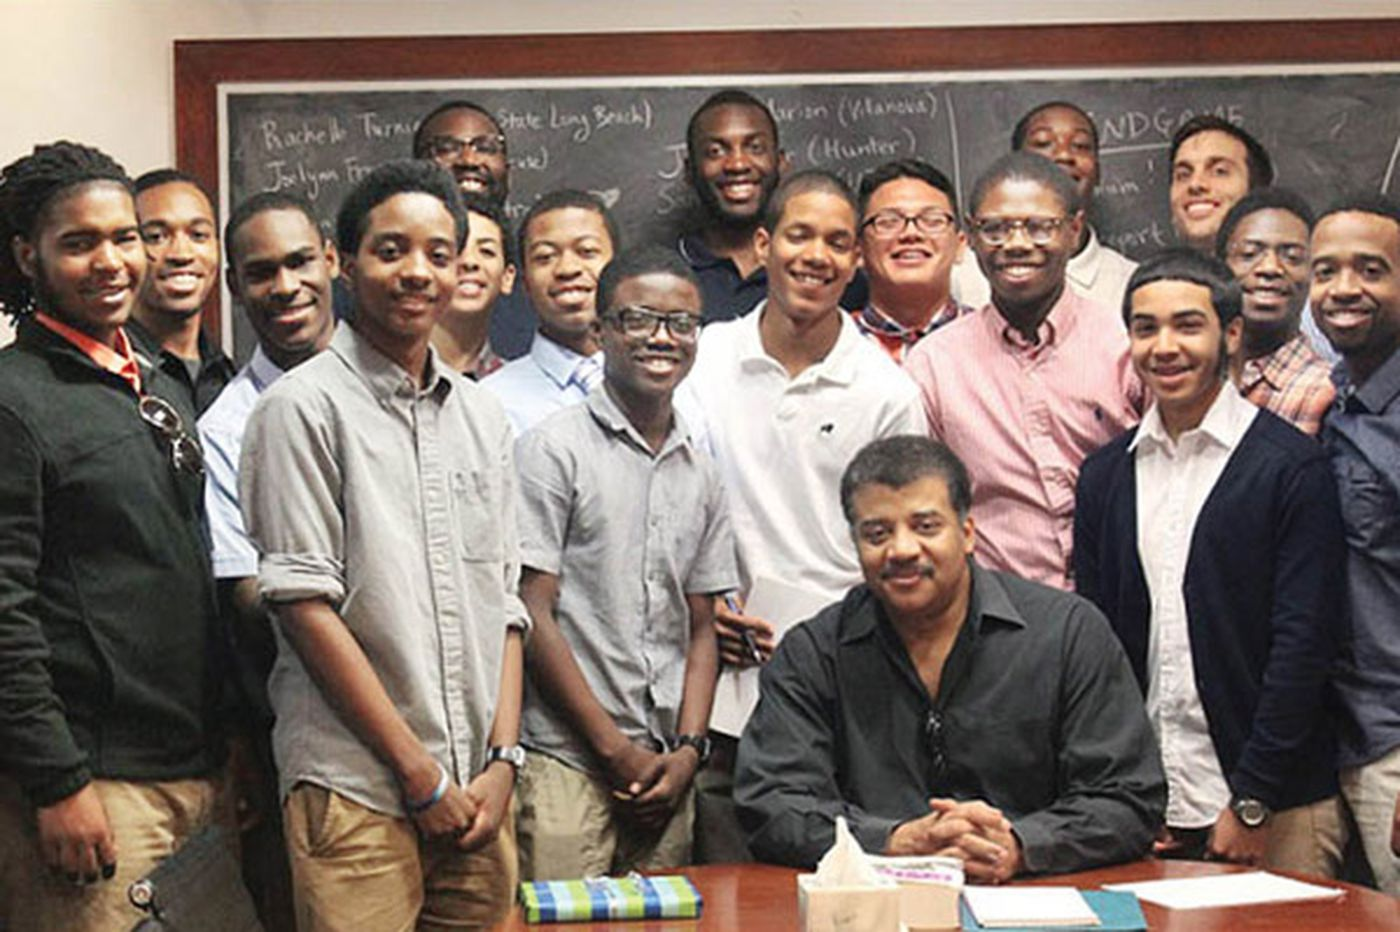 Philly kids meet Neil deGrasse Tyson